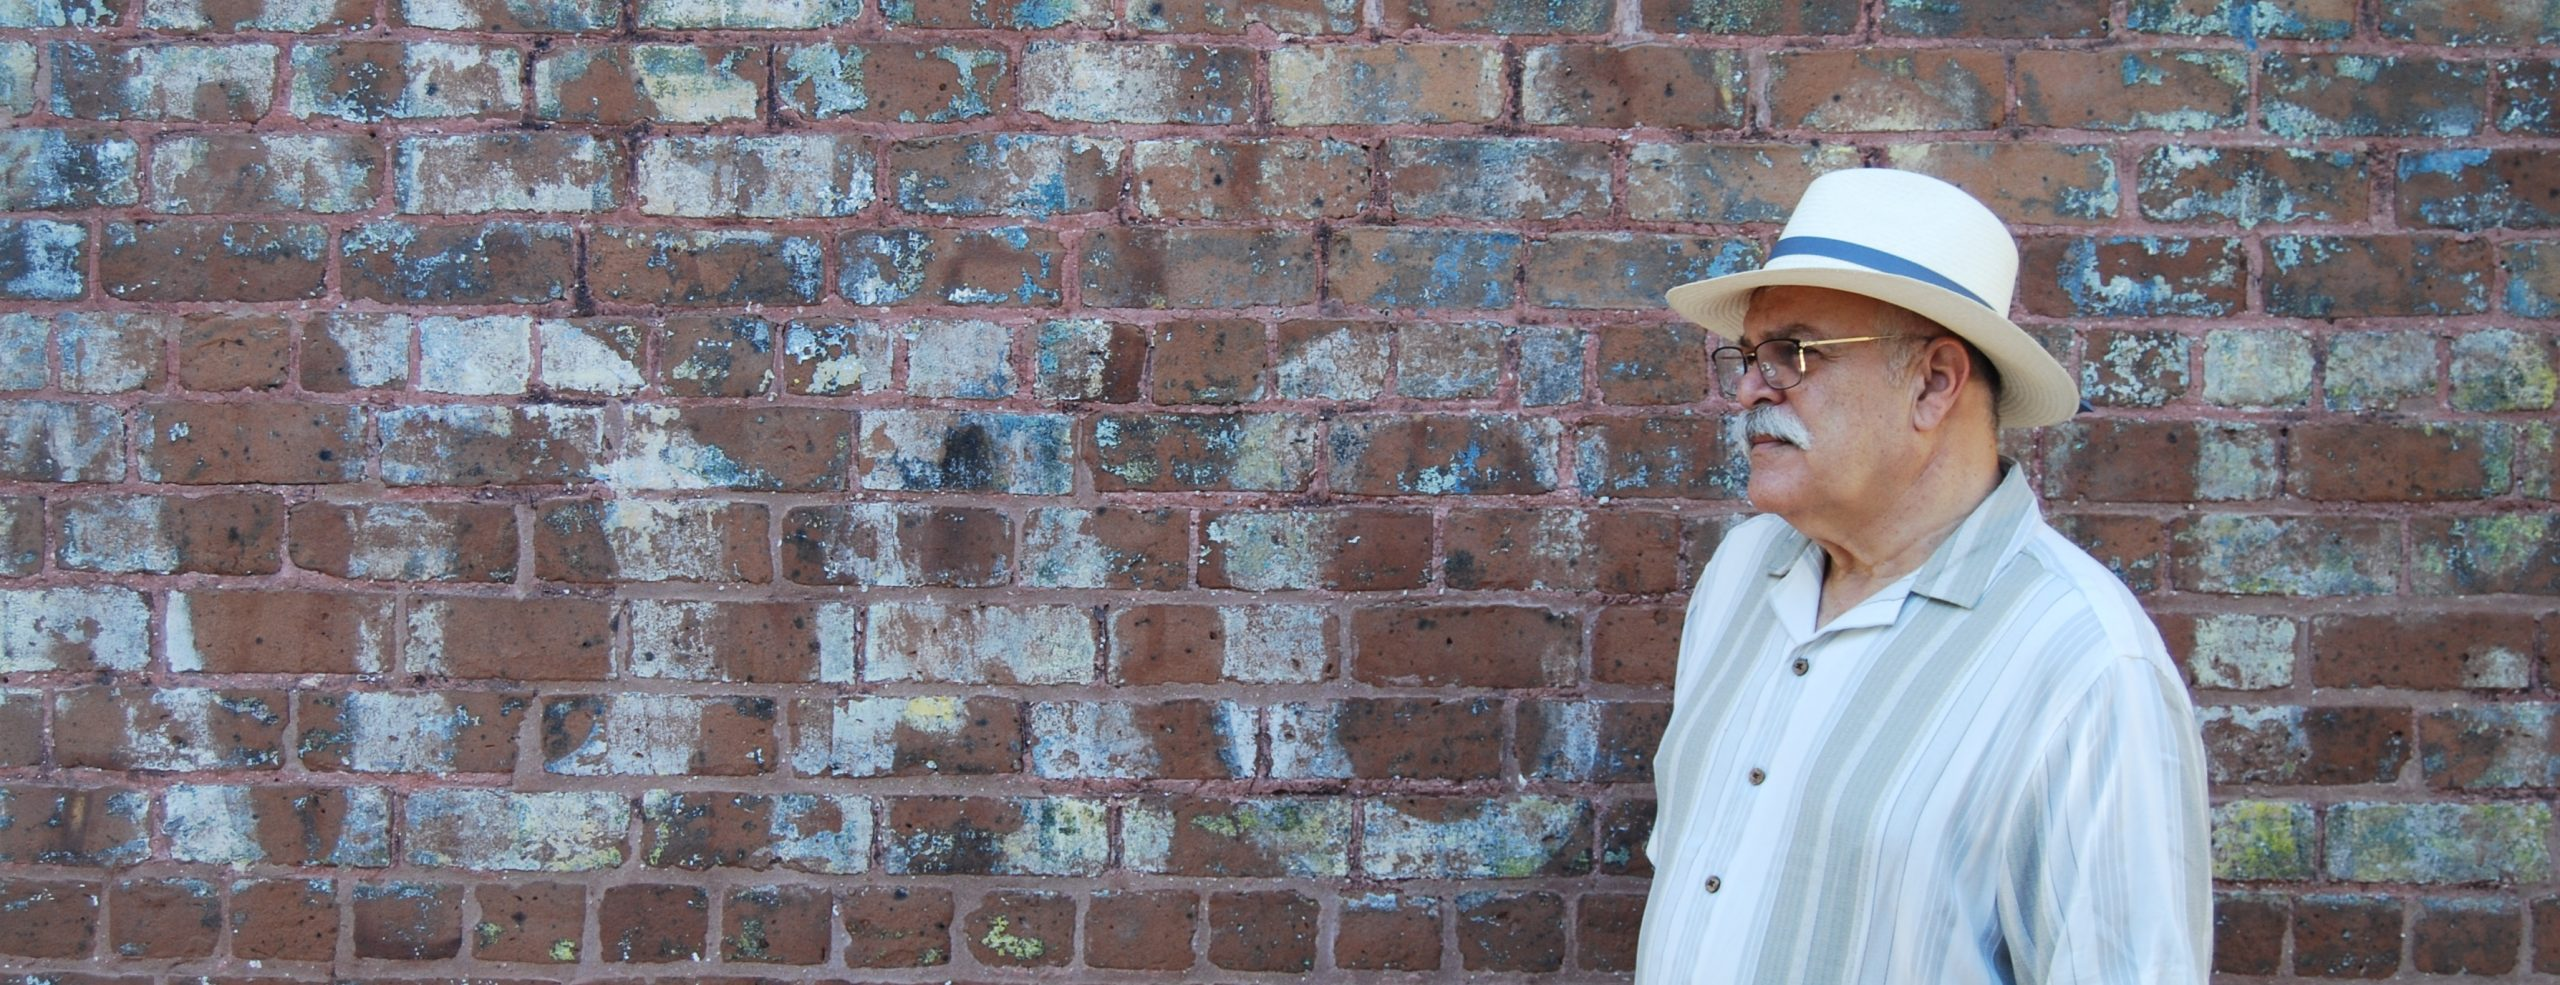 """Translator in white fedora on far right, behind a brick wall with painted letters including """"A-D-A-C."""""""